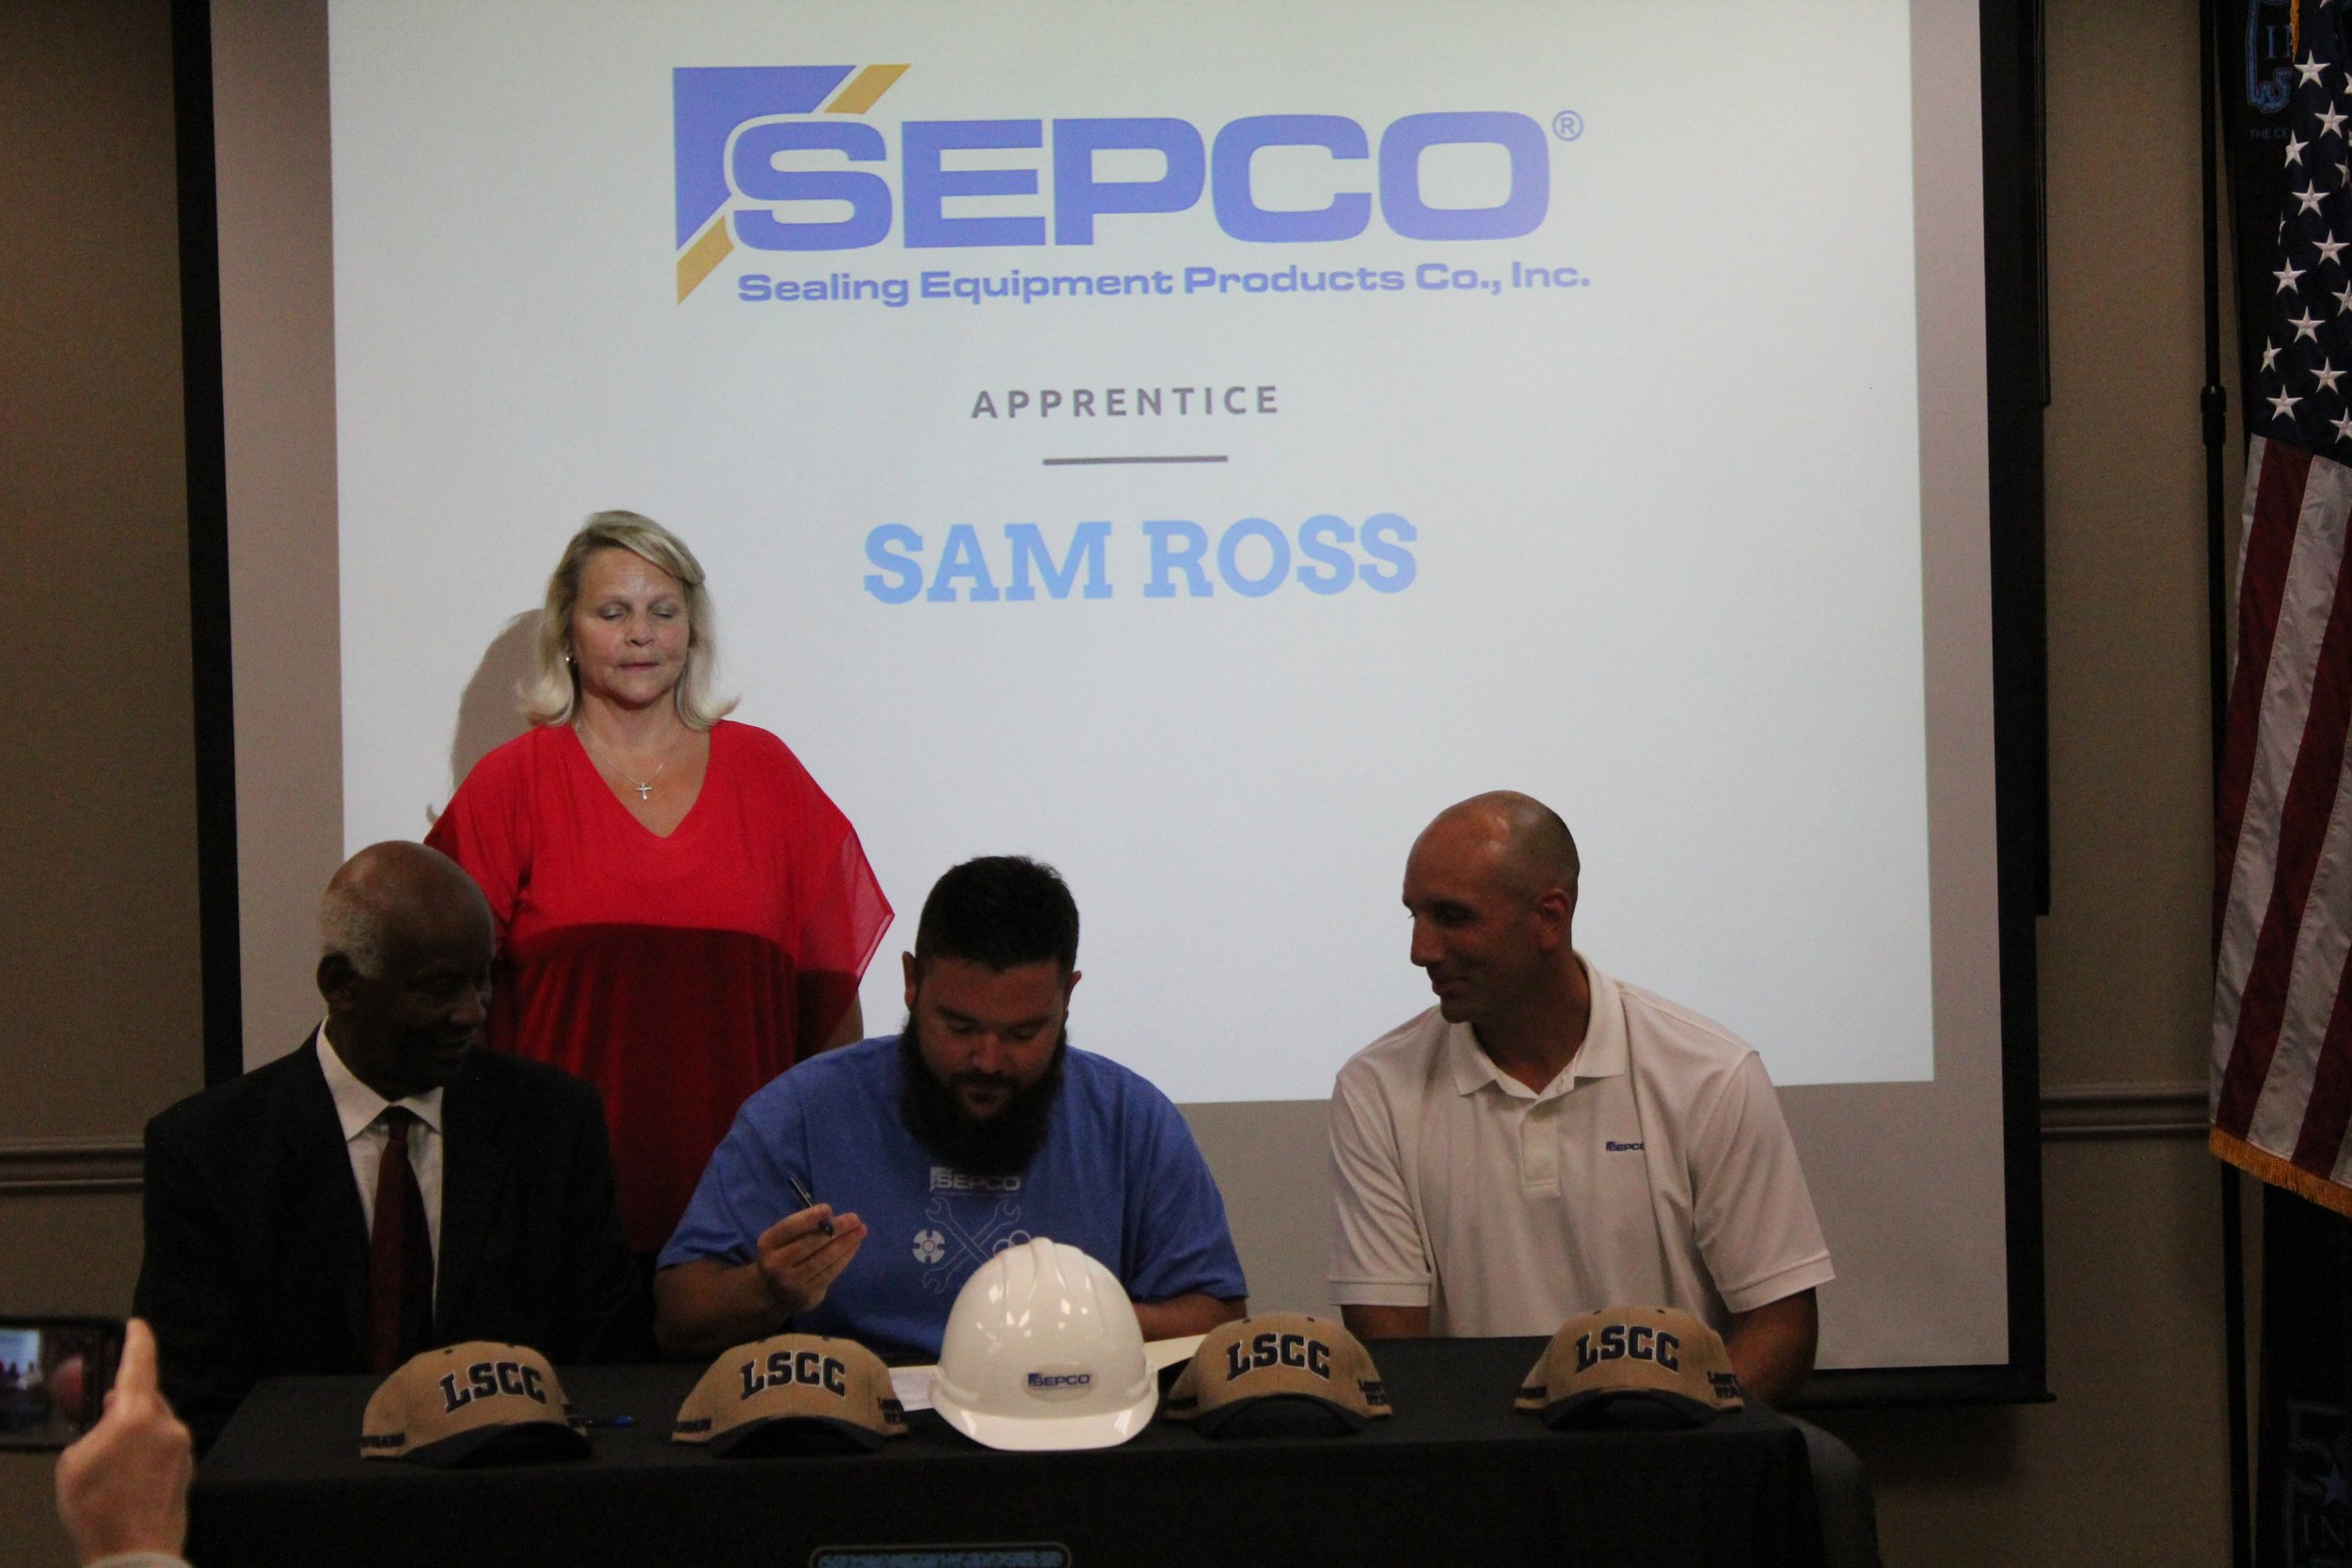 Sam Ross is one of the eight apprentices who will work full-time while attending evening classes at Lawson State Community College.